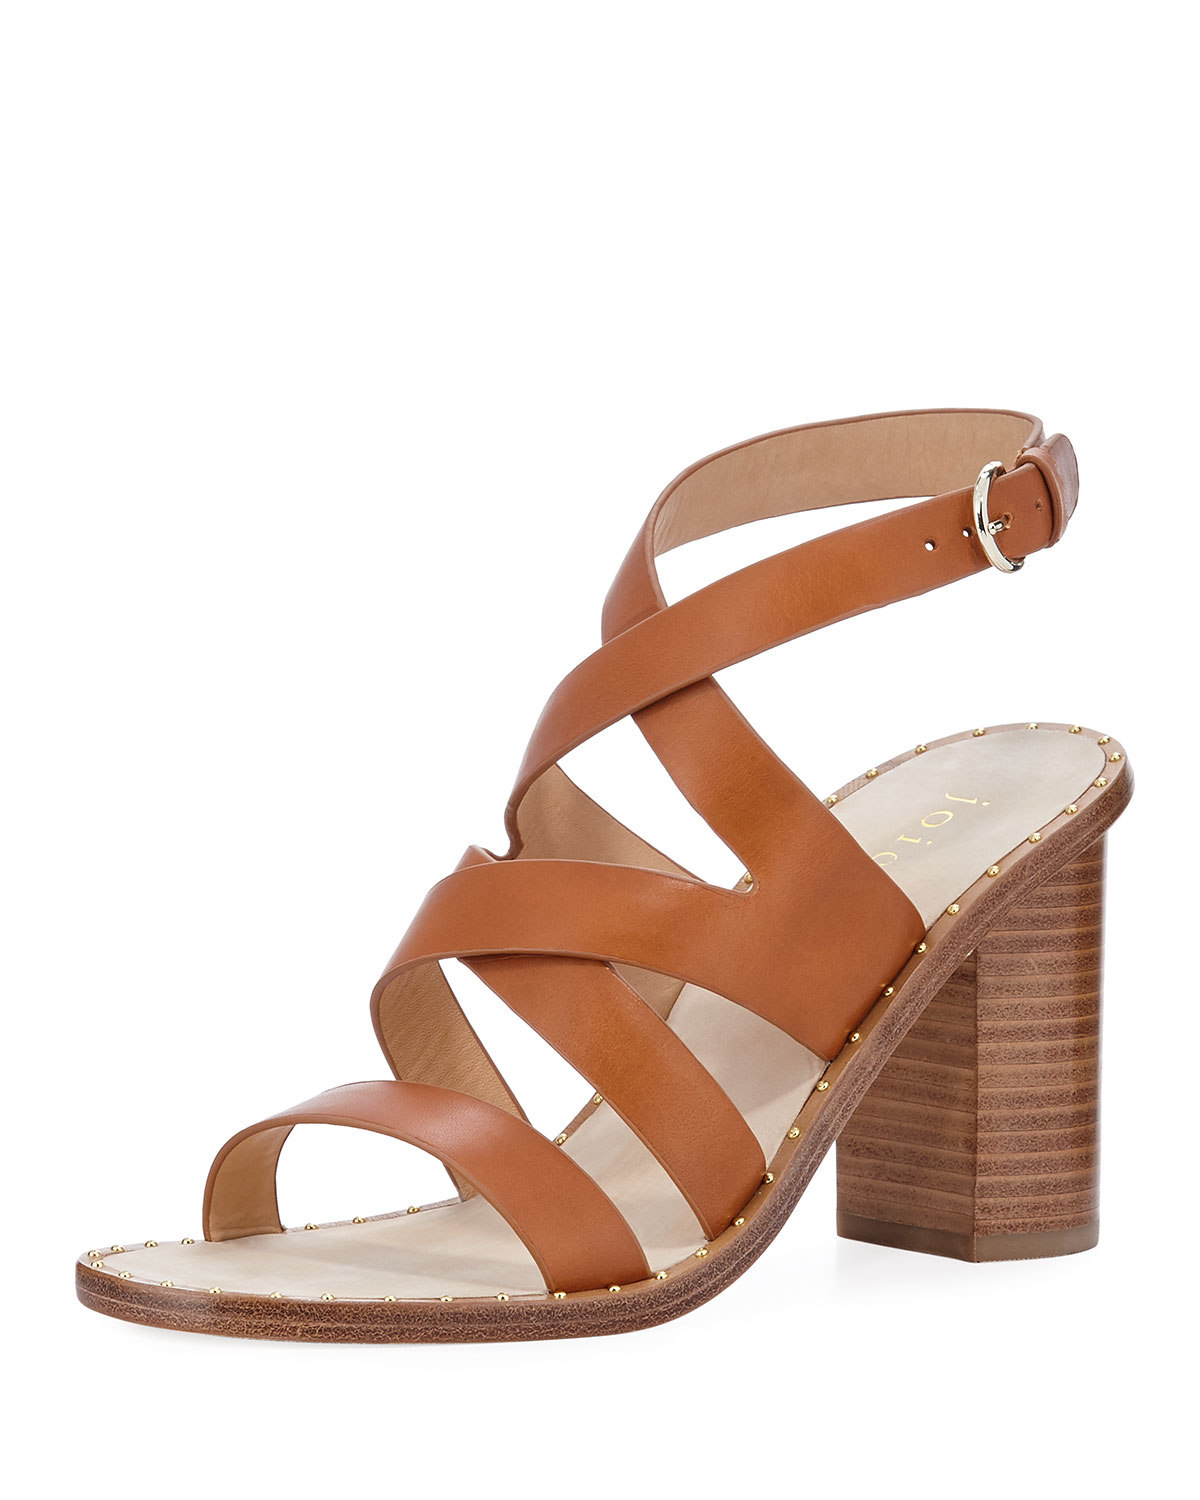 a1fb5448a71 Joie Onfer Strappy Leather Block-Heel Sandal